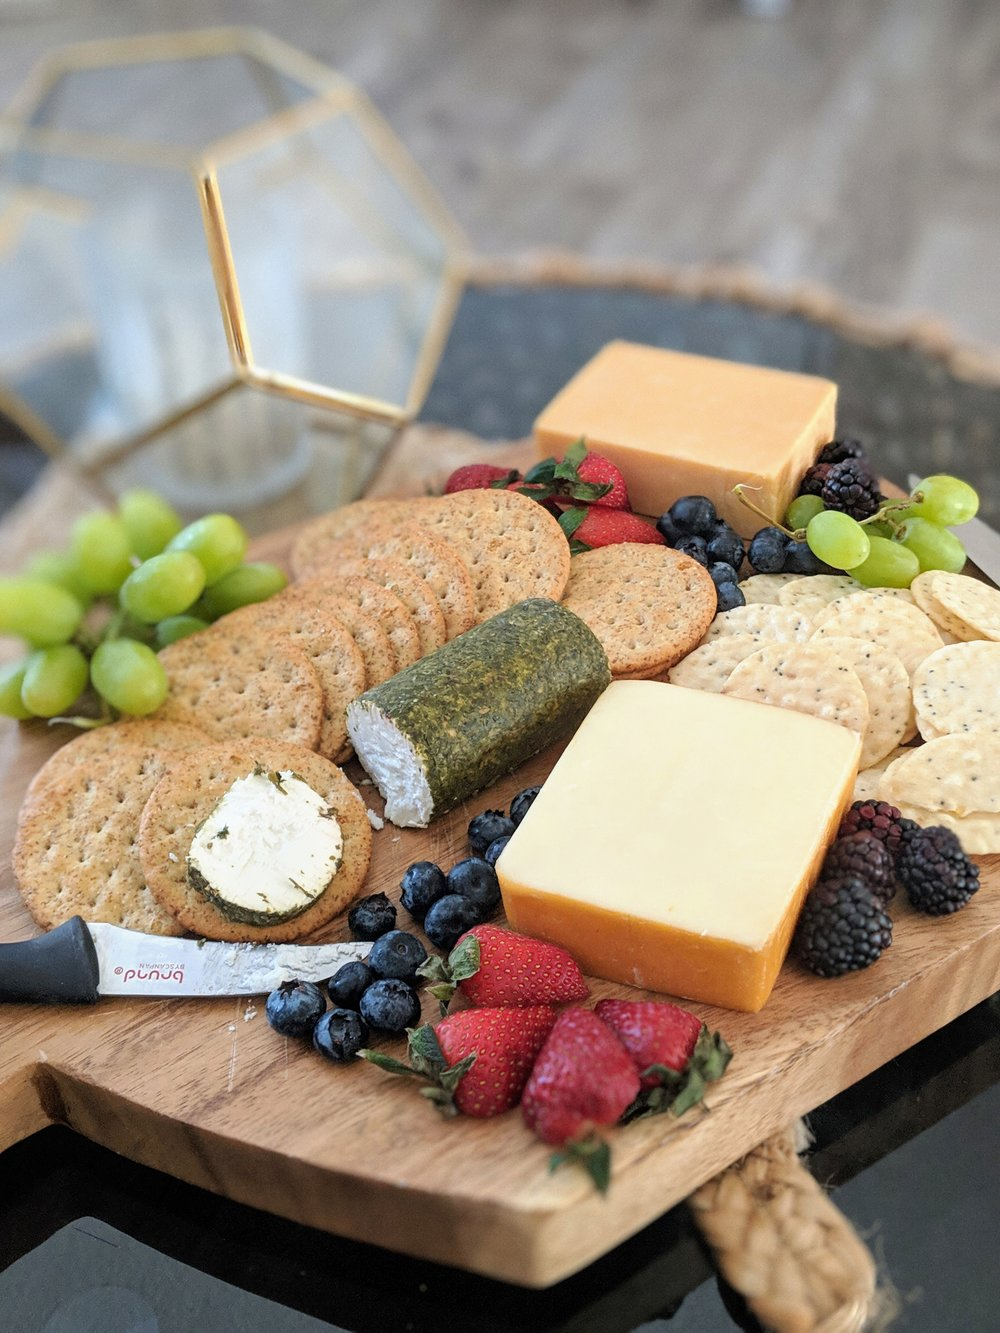 Julie threw this beautiful cheese board together in seconds! A real talent.